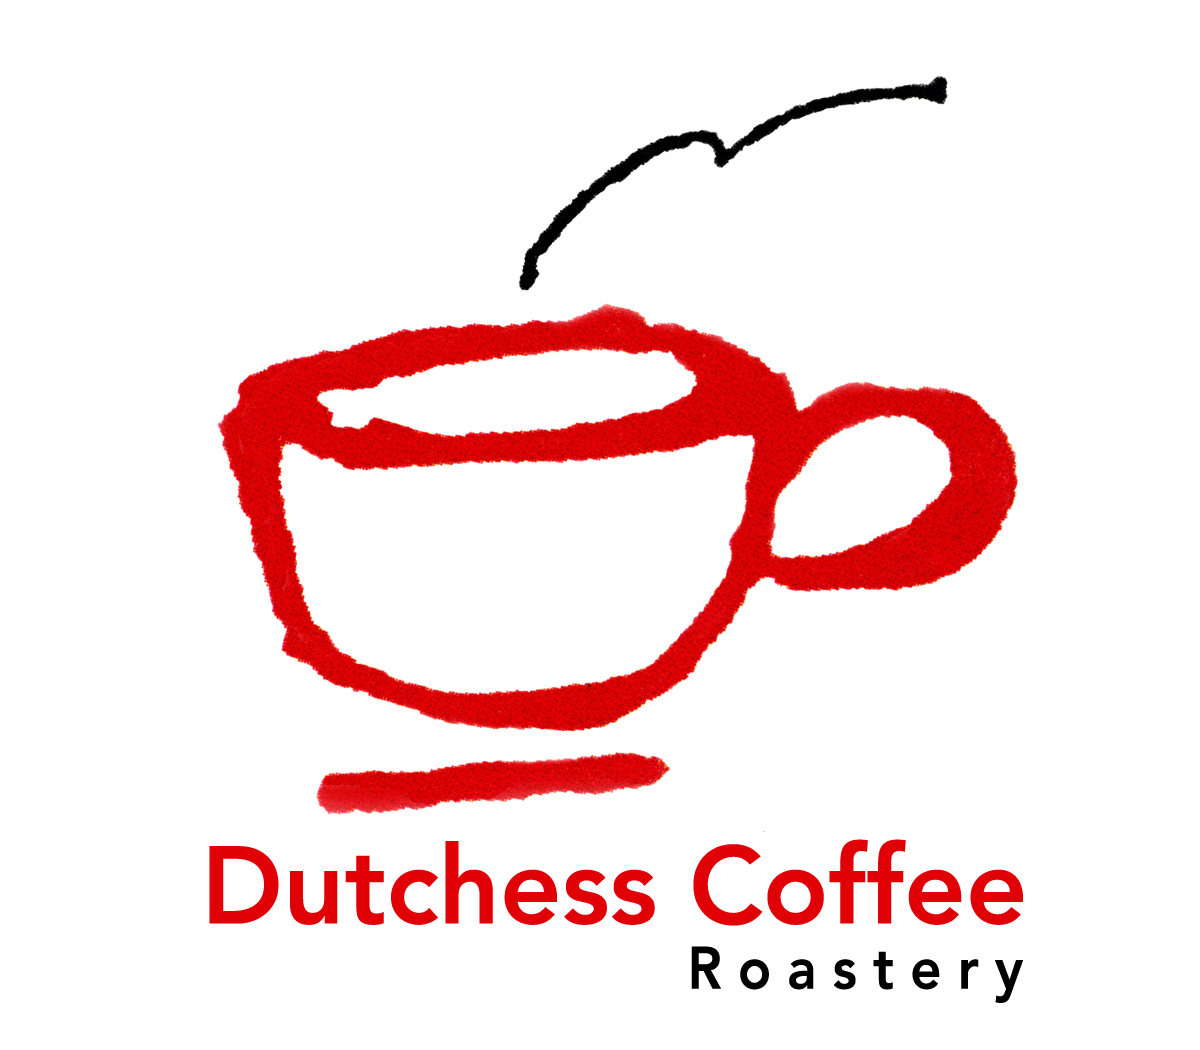 Dutchess Coffee